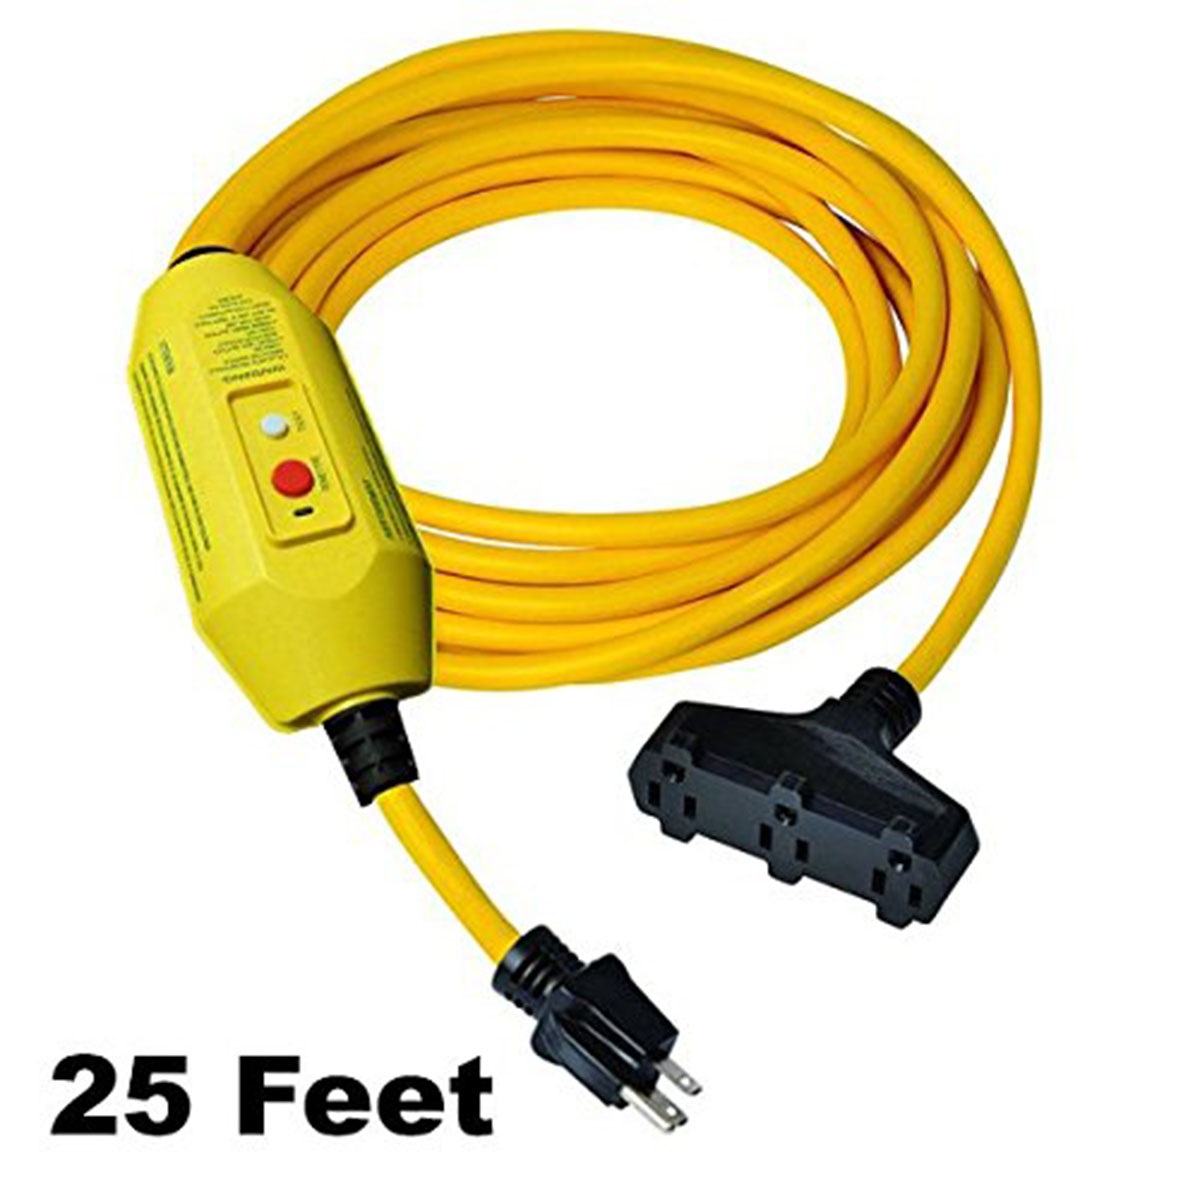 Gfci In Line Portable Adapter Cords Single Outlet